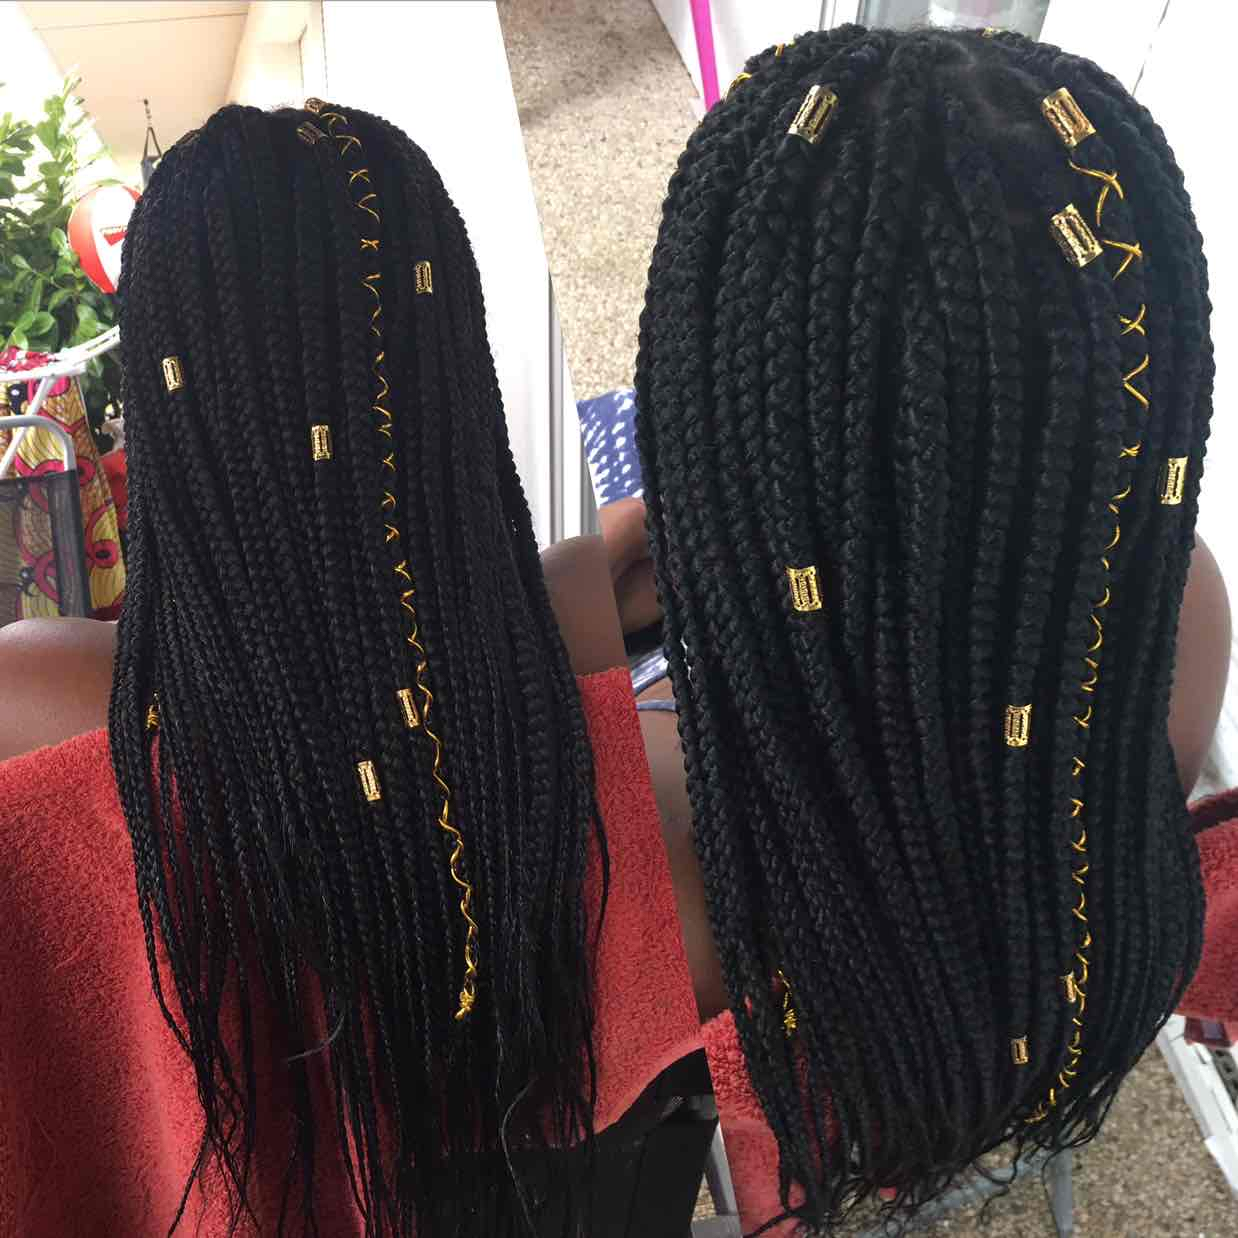 salon de coiffure afro tresse tresses box braids crochet braids vanilles tissages paris 75 77 78 91 92 93 94 95 RDUGKJDM